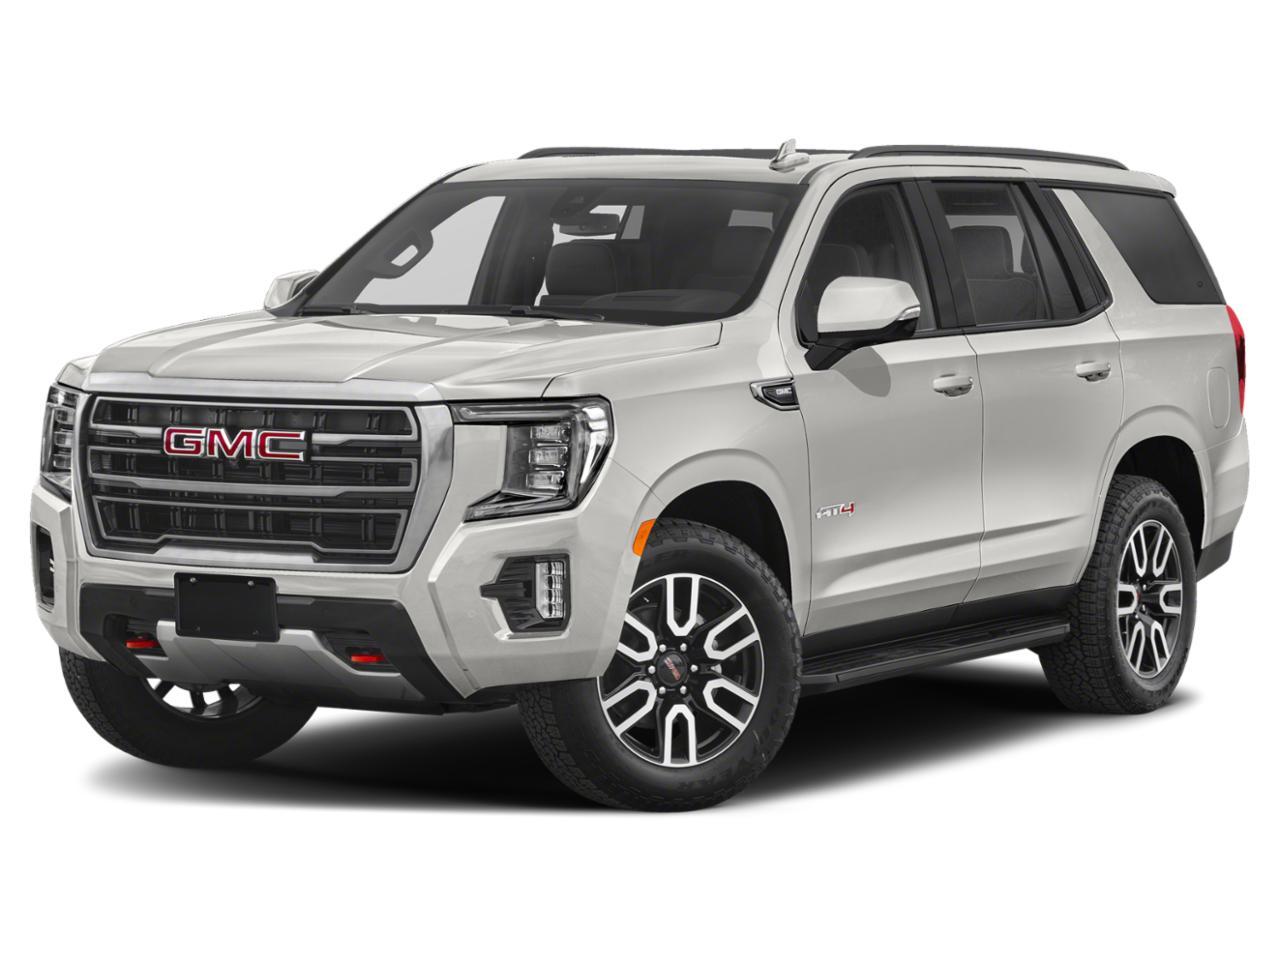 2021 GMC Yukon Vehicle Photo in Depew, NY 14043